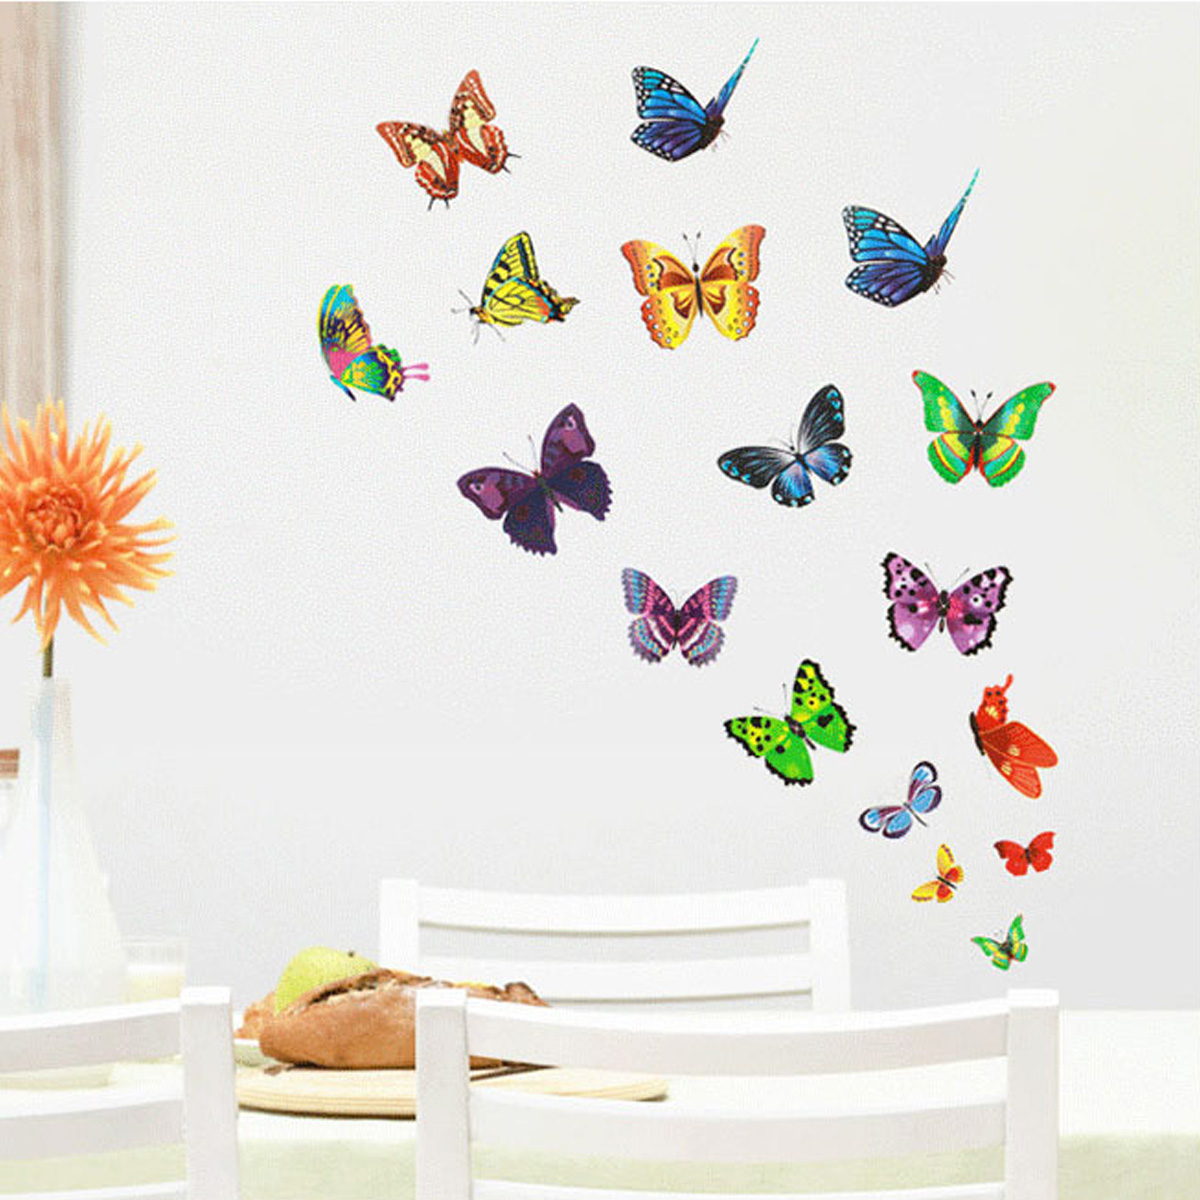 Diy family removable art wall sticker mirror decal mural for Diy photo wall mural